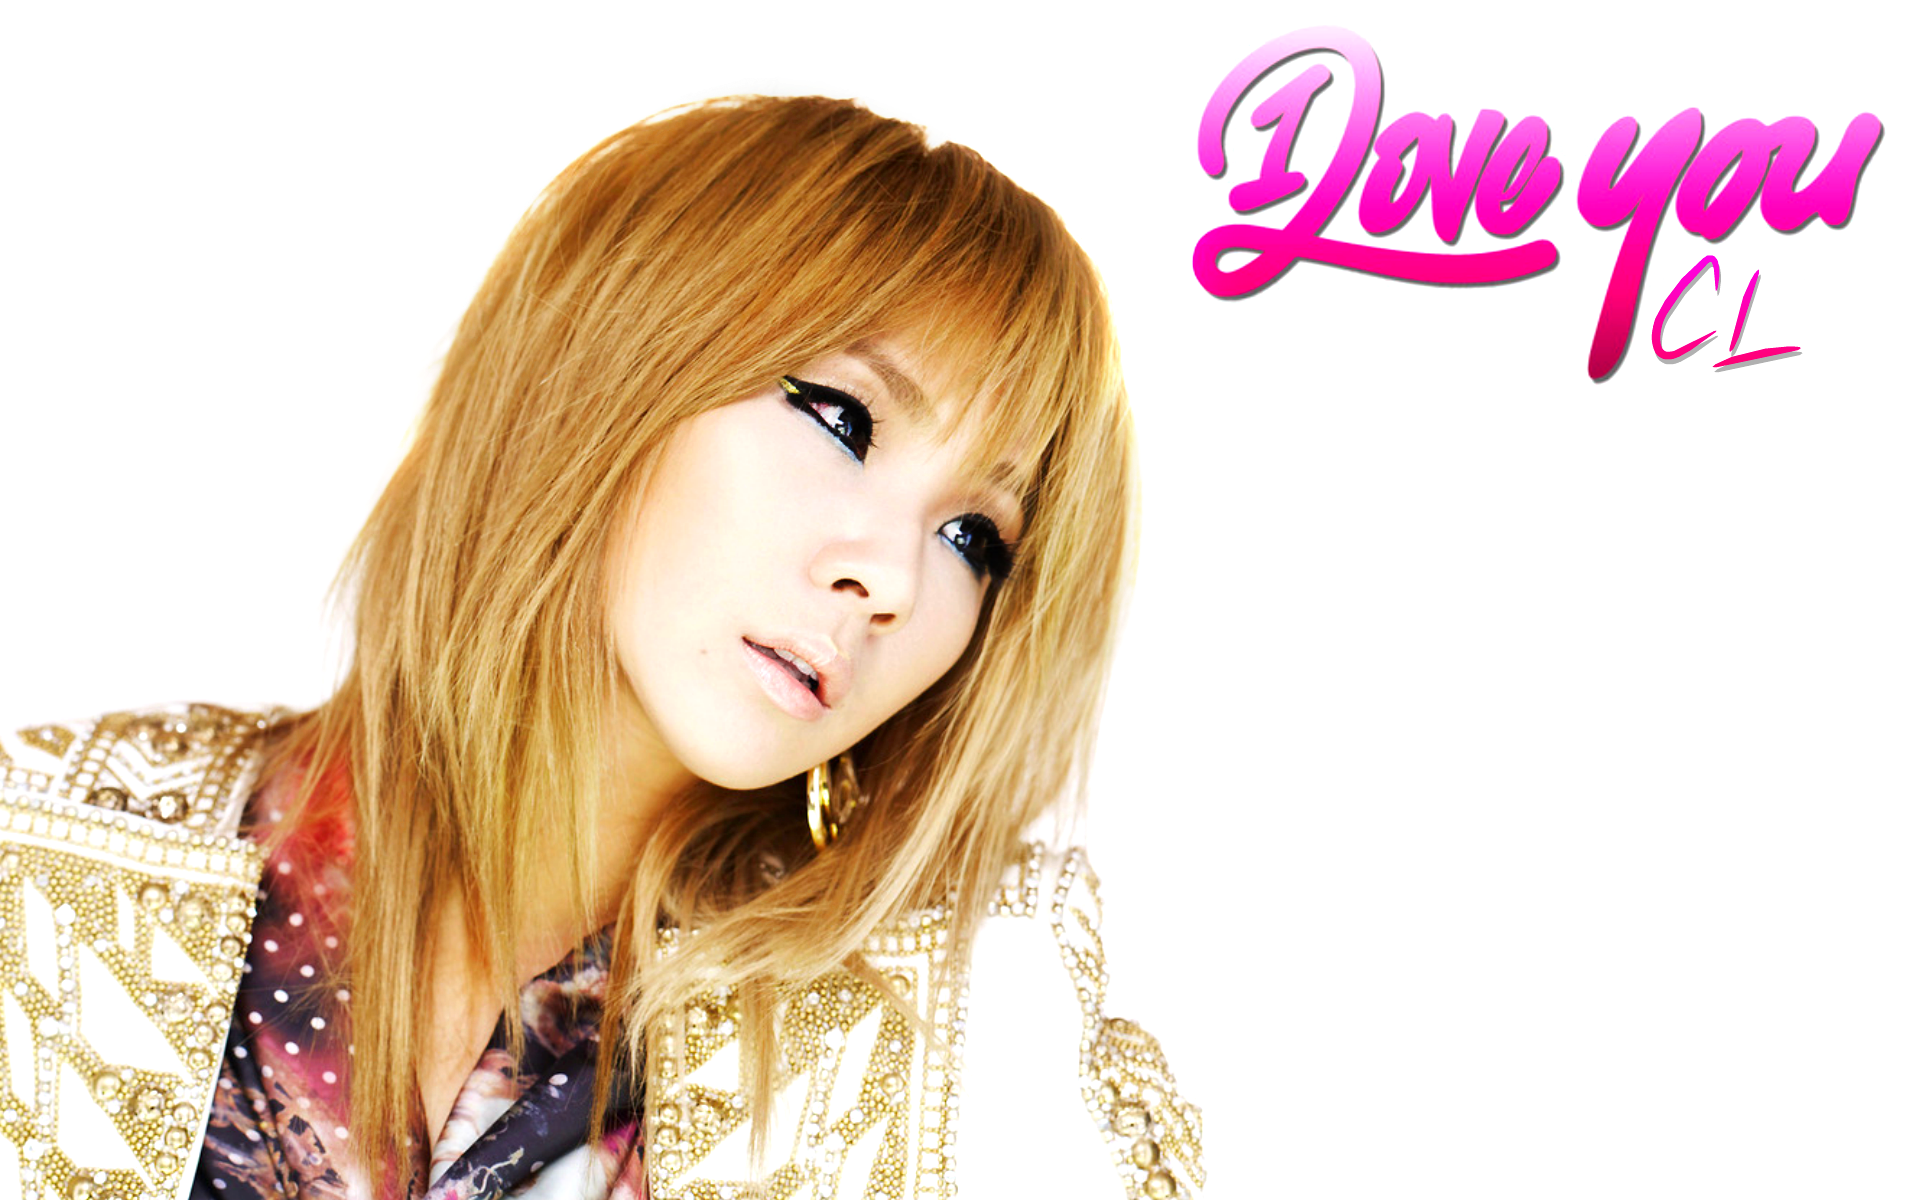 cl and dara relationship quizzes